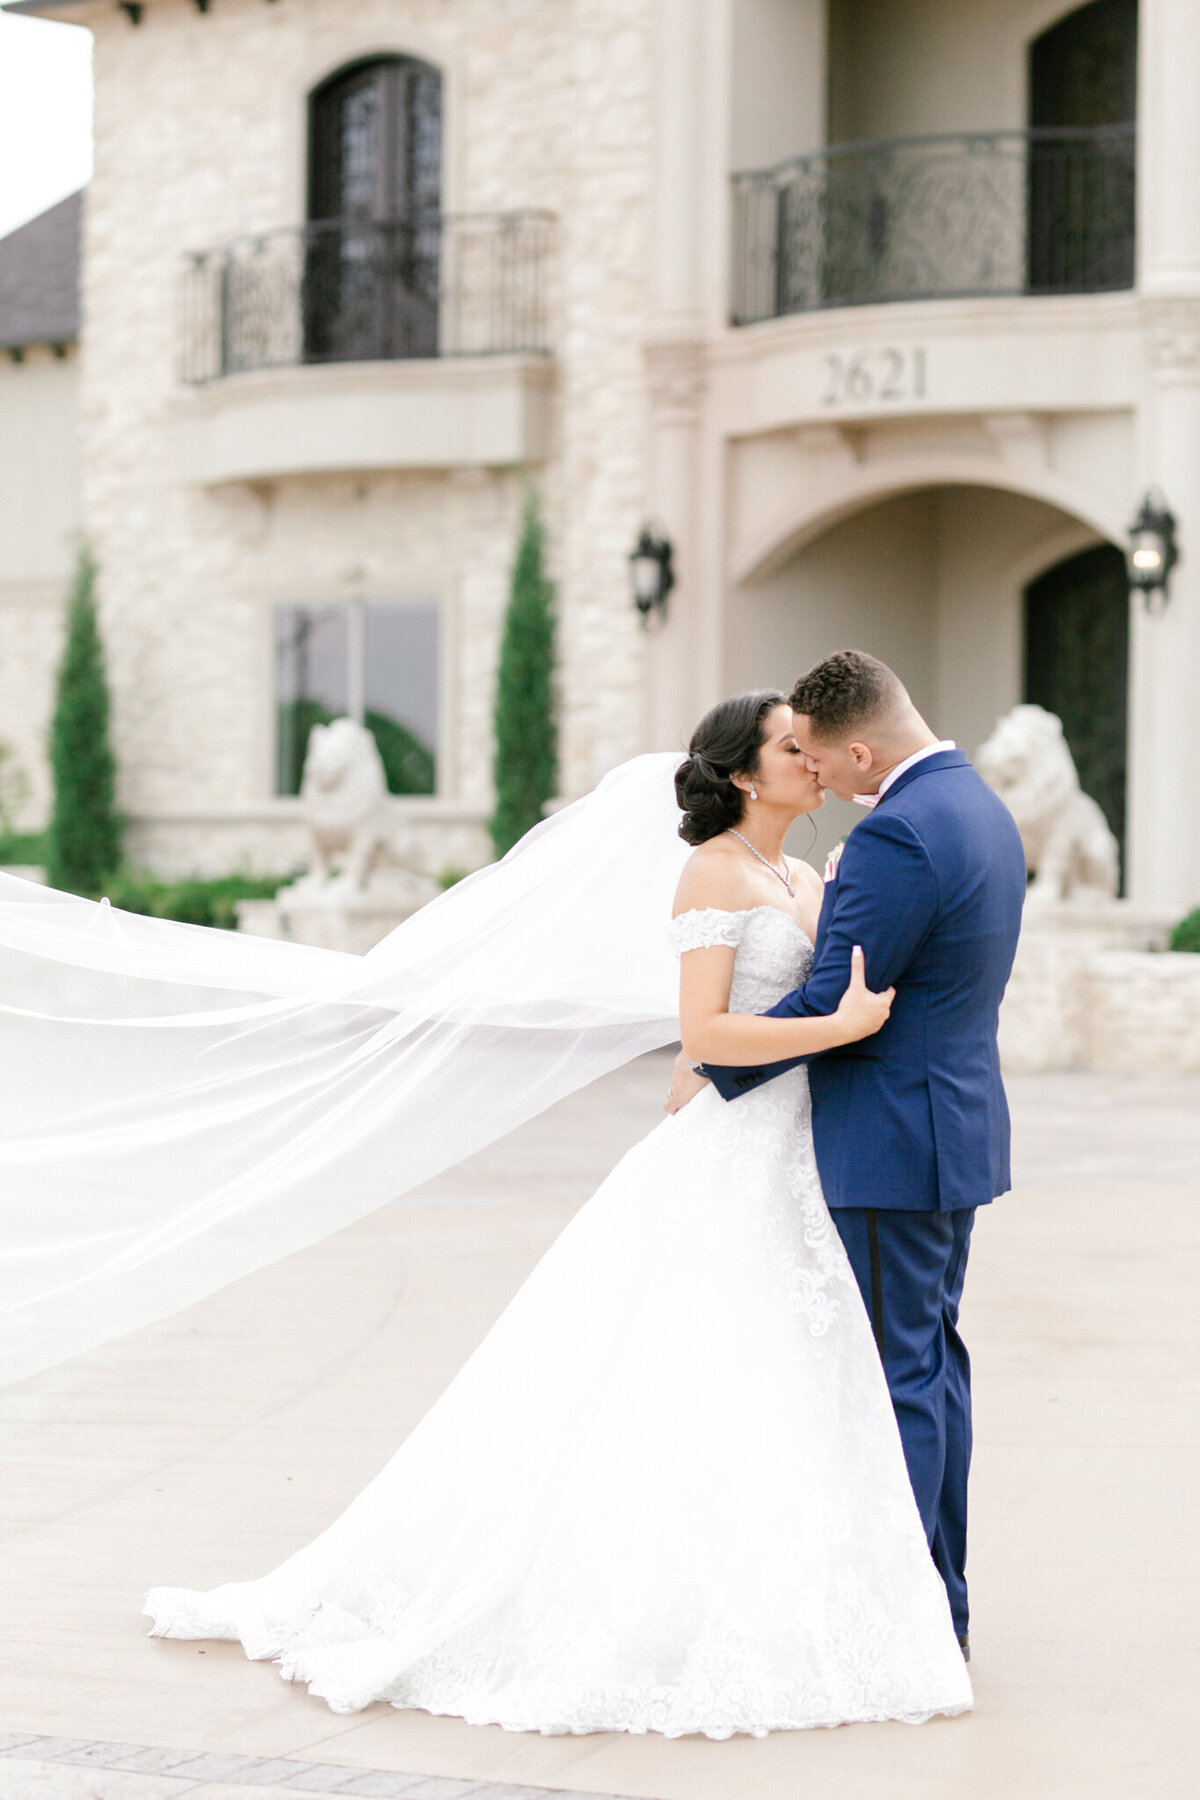 Jasmine & Josh Wedding at Knotting Hill Place | Dallas DFW Wedding Photographer | Sami Kathryn Photography-99